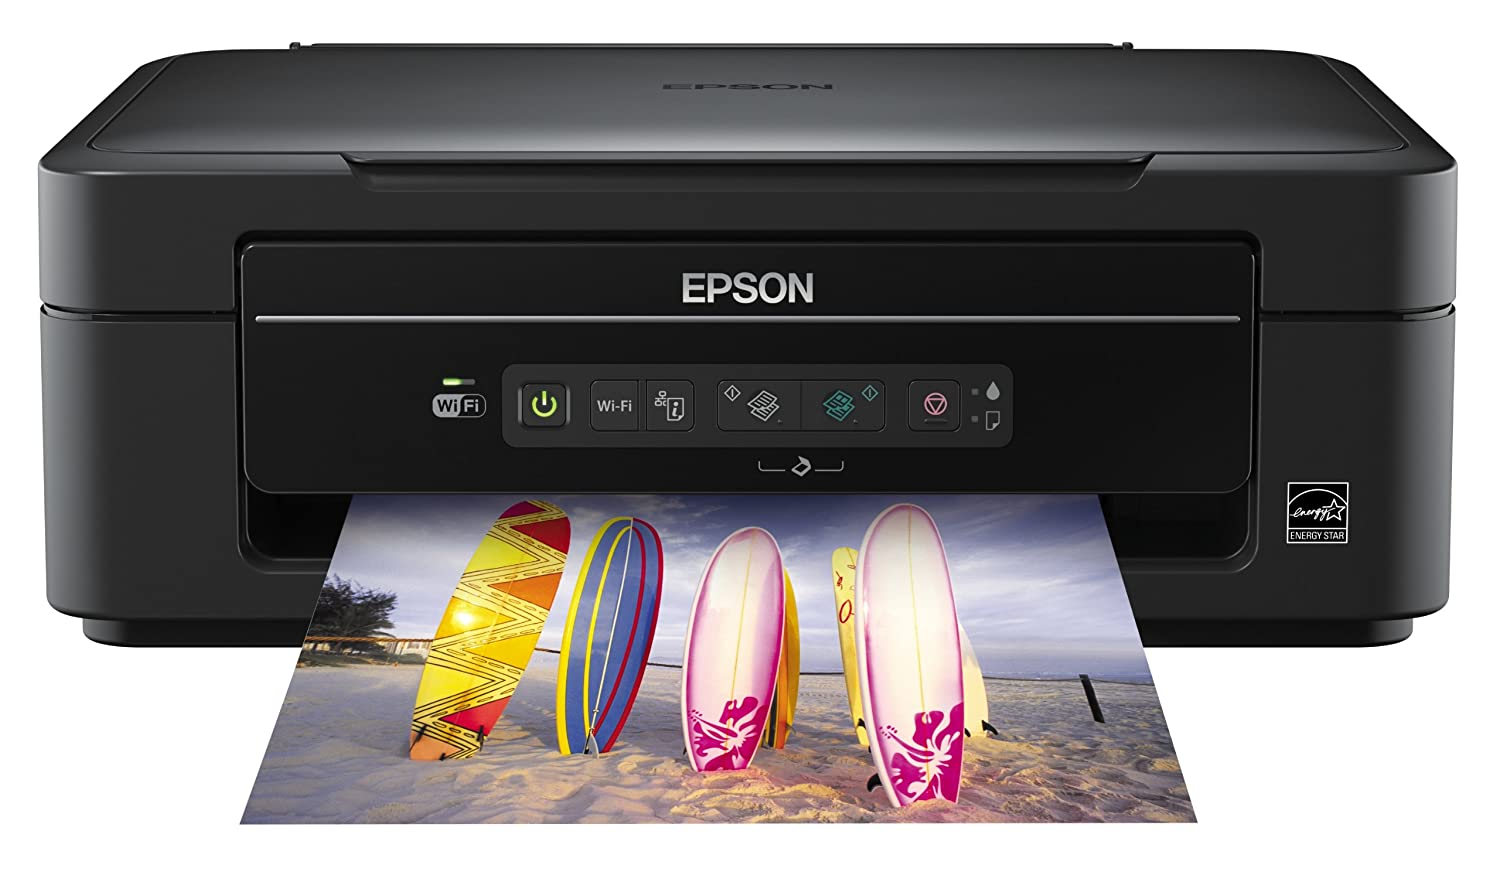 Epson Stylus Sx235W All-In-One Printer with High Speed Wifi (Print, Copy  and Scan): Amazon.co.uk: Computers & Accessories